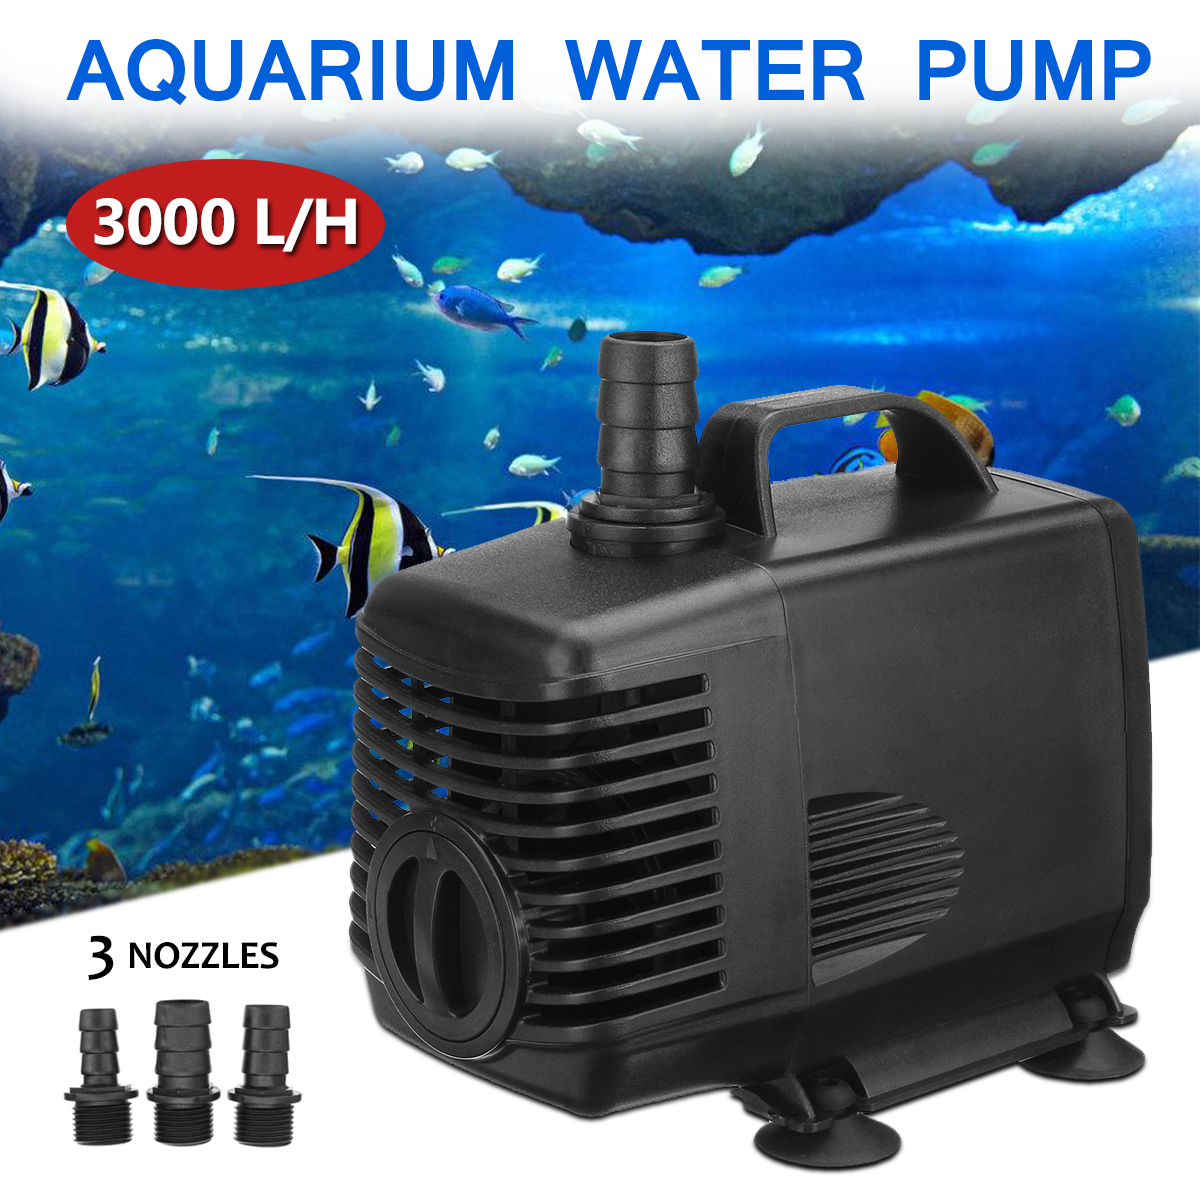 купить 3000L/H 3 Nozzles Aquarium Water Pump 220V-240V 45W Submersible Fountain Fish Tank Pond Fountain Air Water Pump Filter по цене 1918.48 рублей